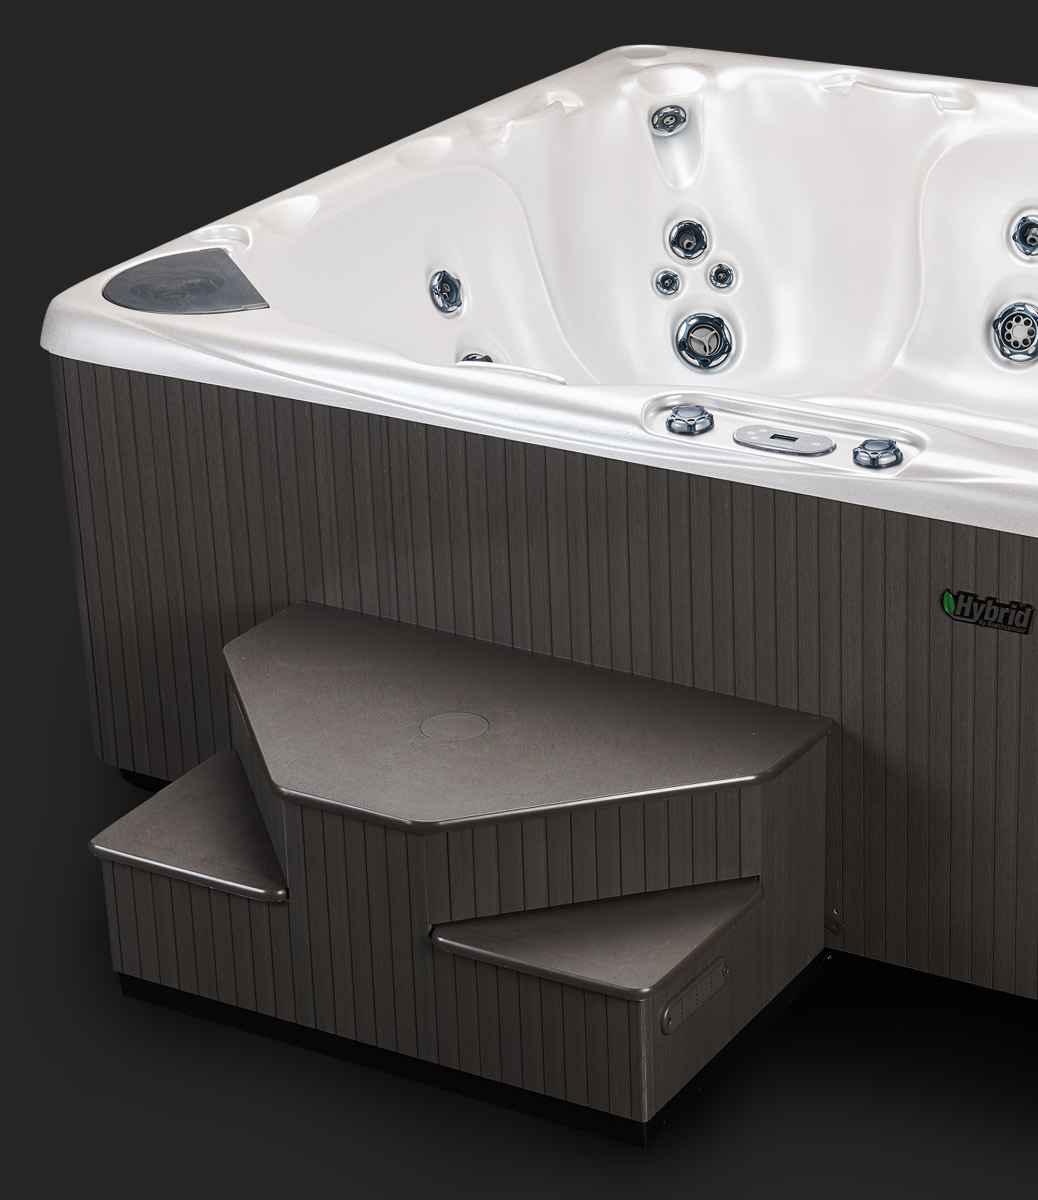 Beachcomber Hot Tubs Modèle 590